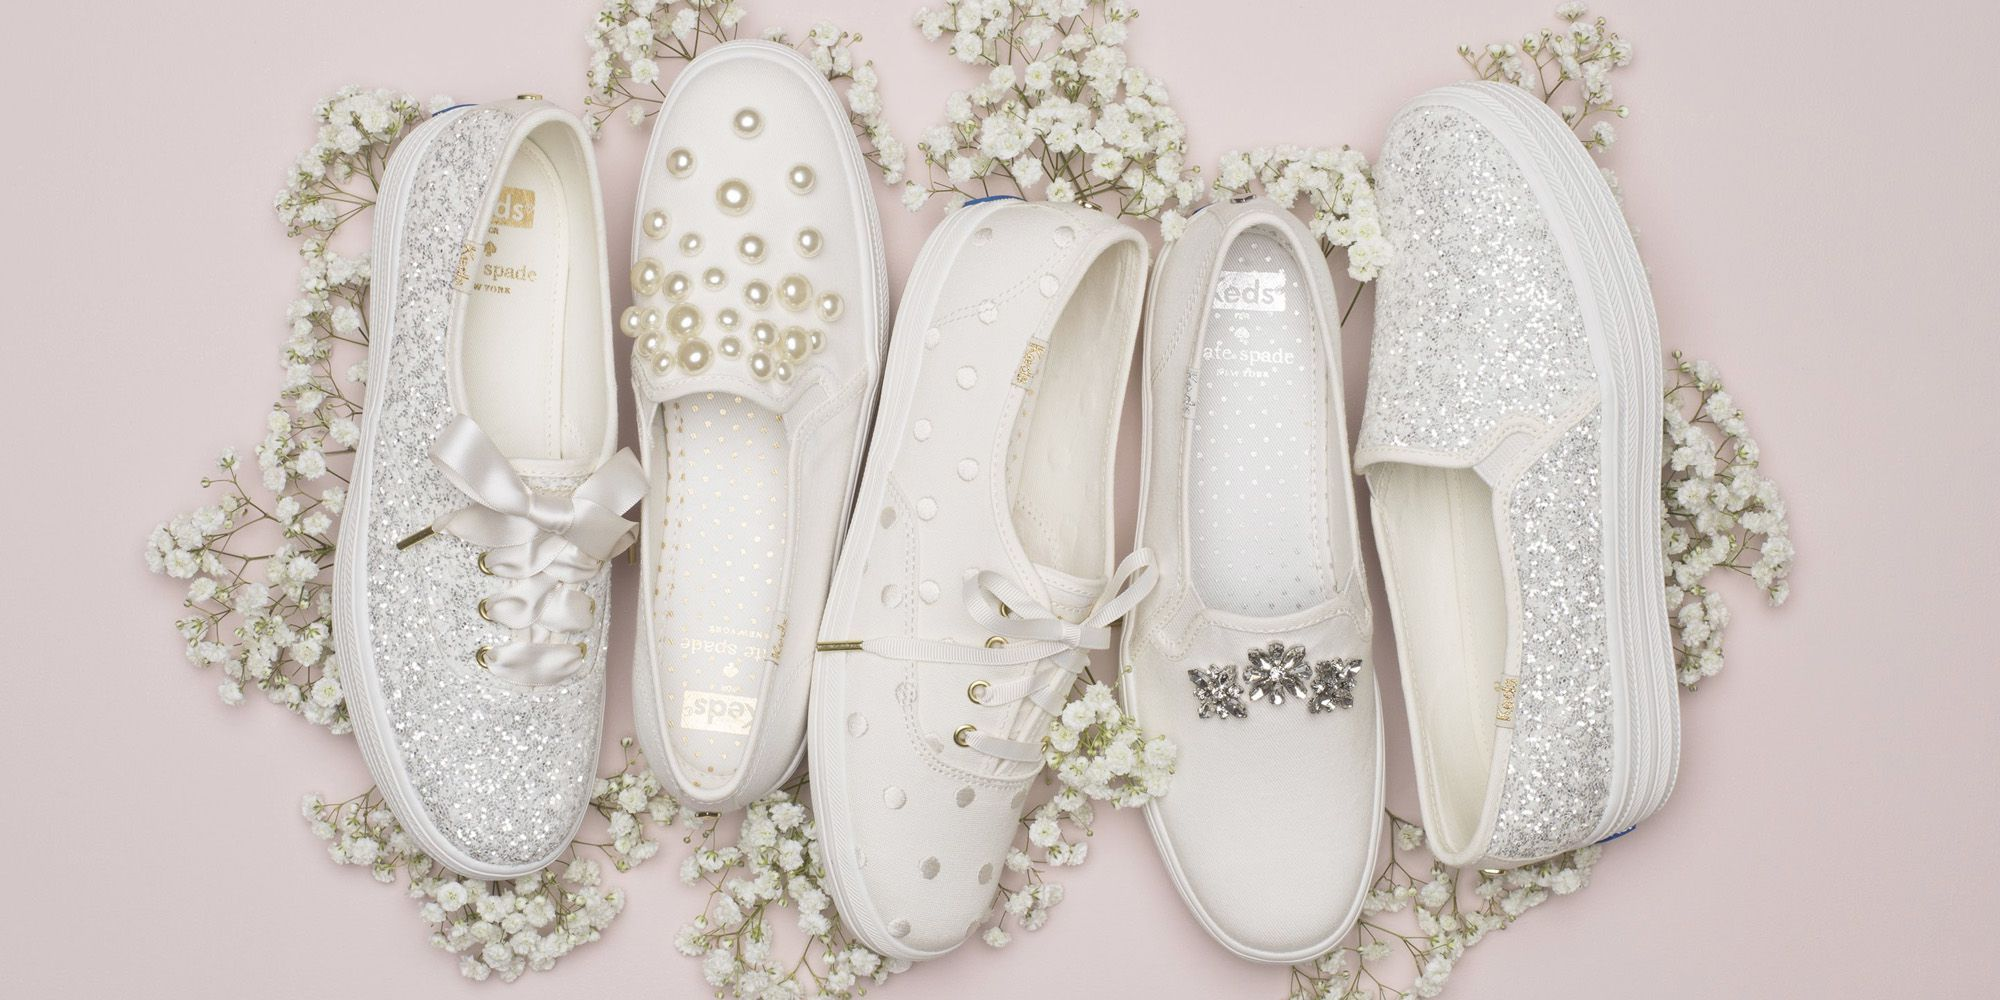 2b26230d268 Keds and Kate Spade Have Solved Your Wedding Day Troubles